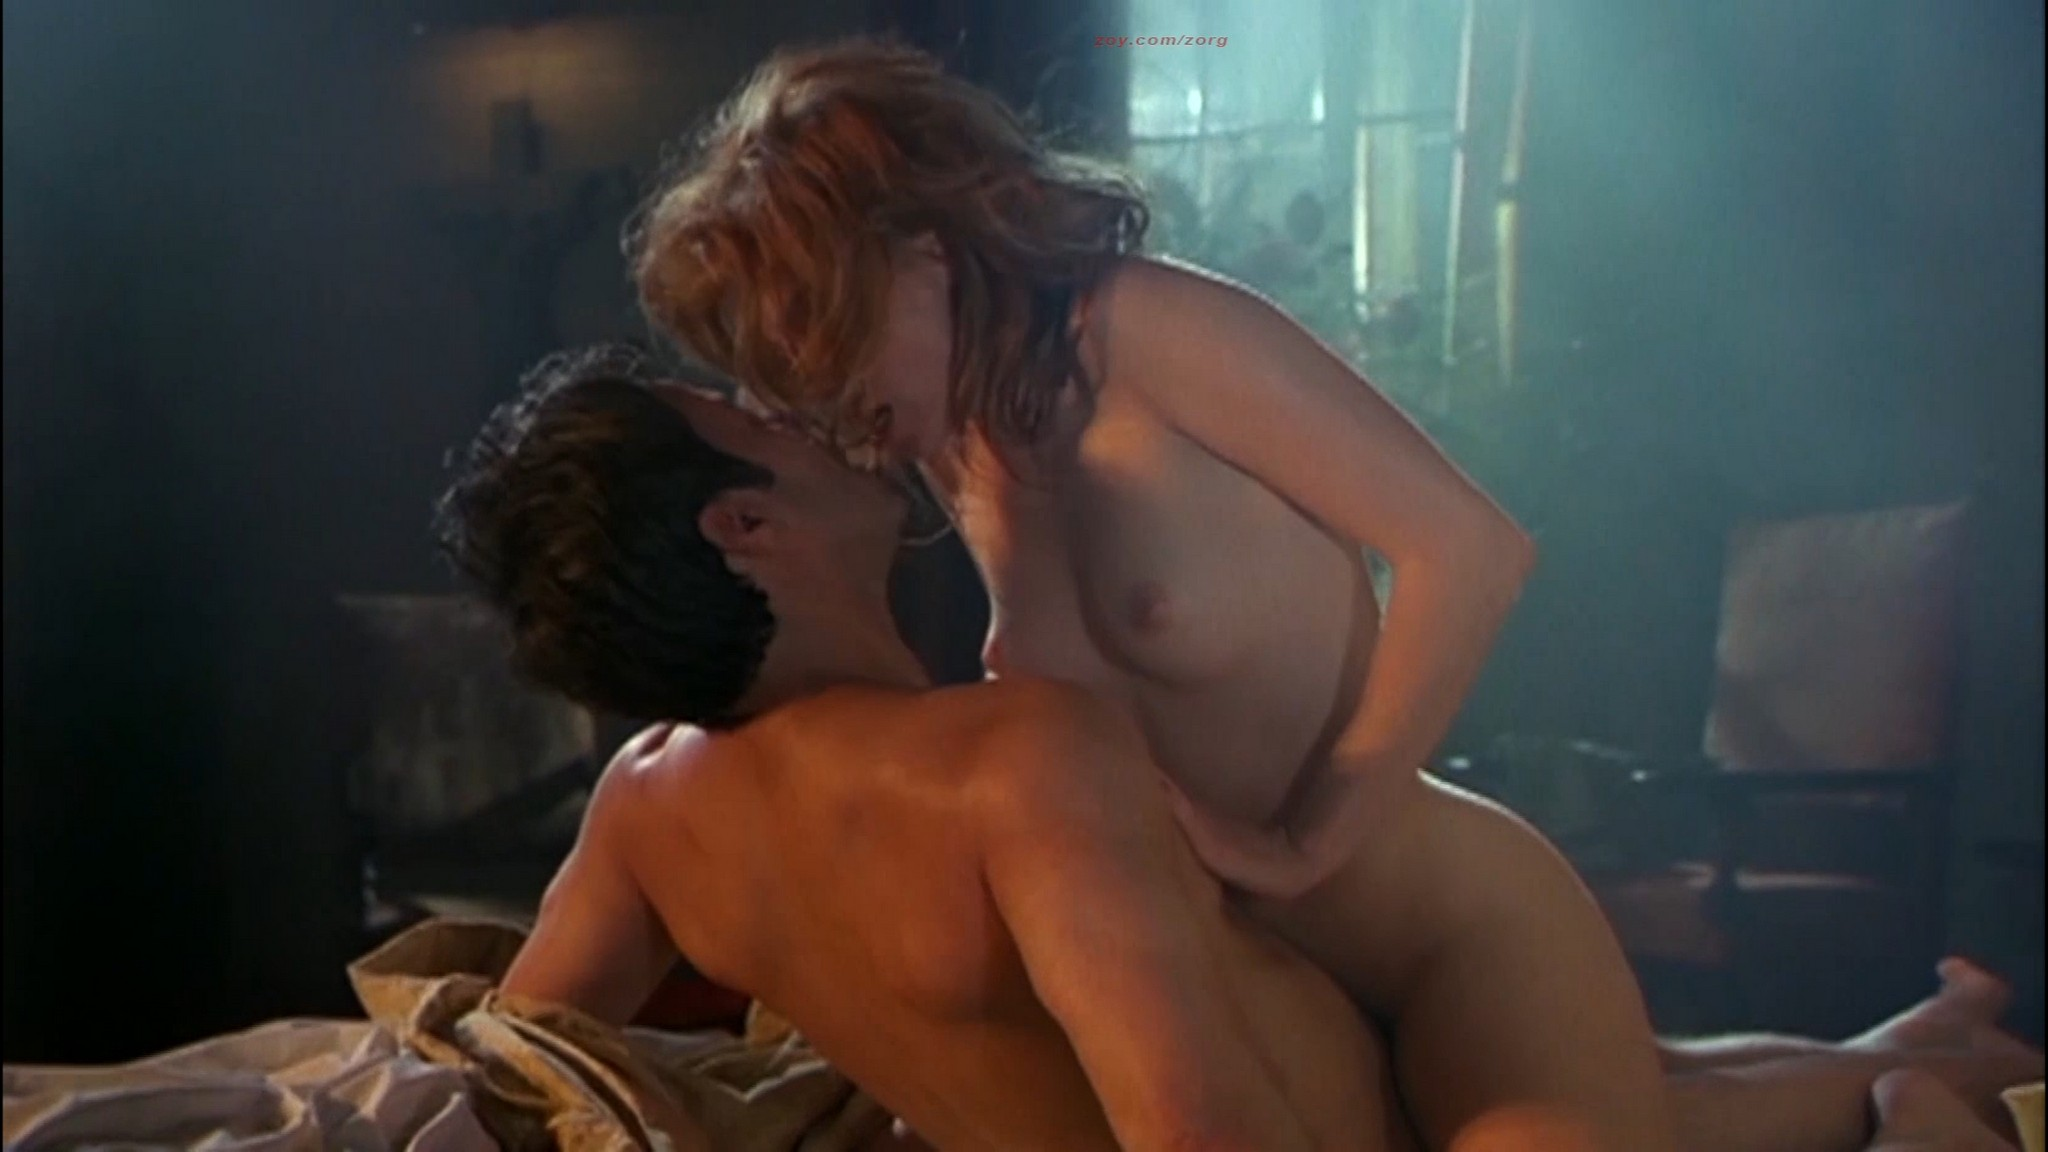 Céline Bonnier nude and hot sex - The Hunger (1998) HD 1080p (5)